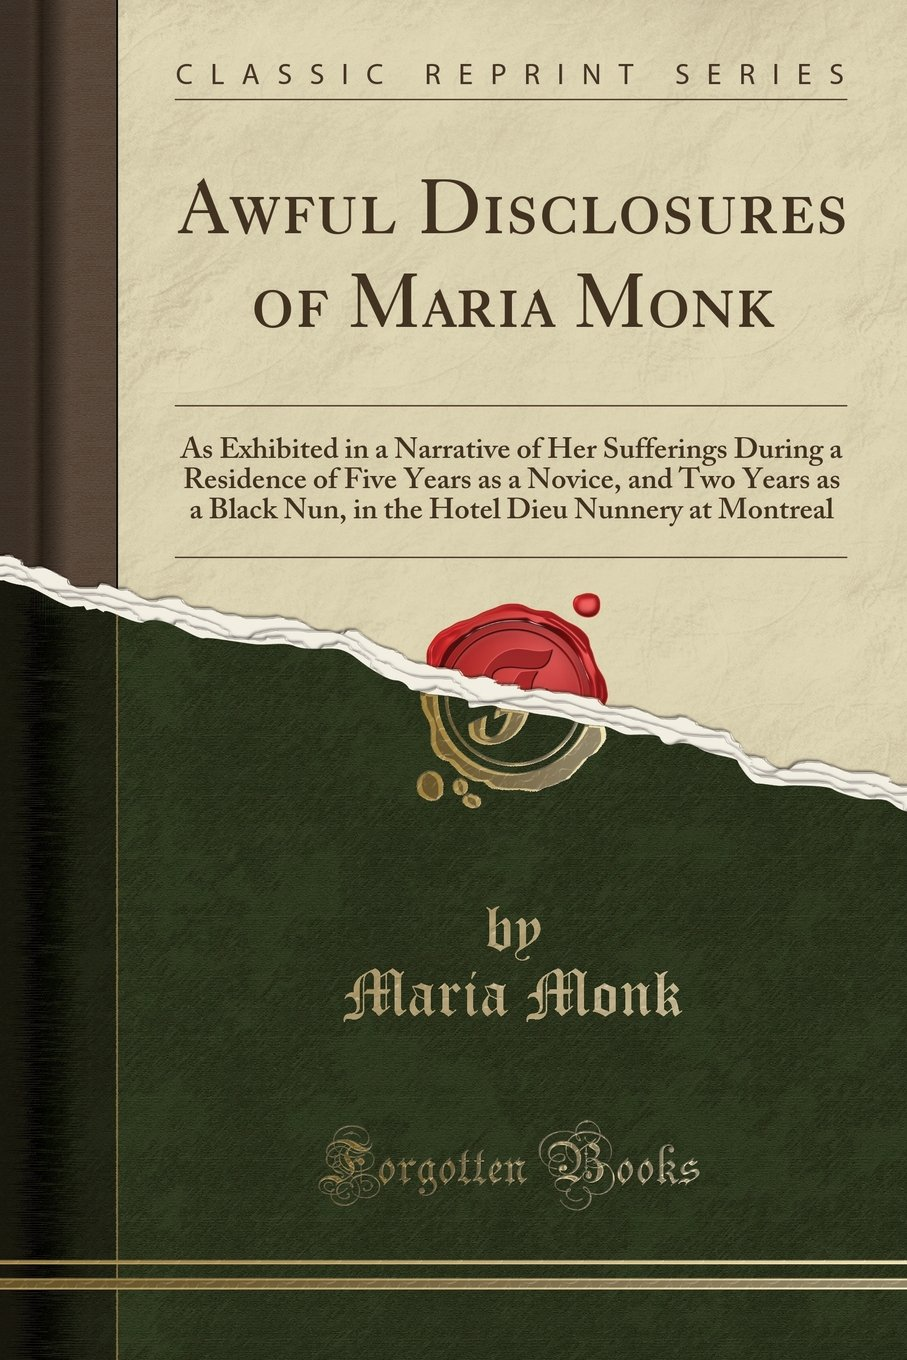 Read Online Awful Disclosures of Maria Monk: As Exhibited in a Narrative of Her Sufferings During a Residence of Five Years as a Novice, and Two Years as a Black ... Dieu Nunnery at Montreal (Classic Reprint) pdf